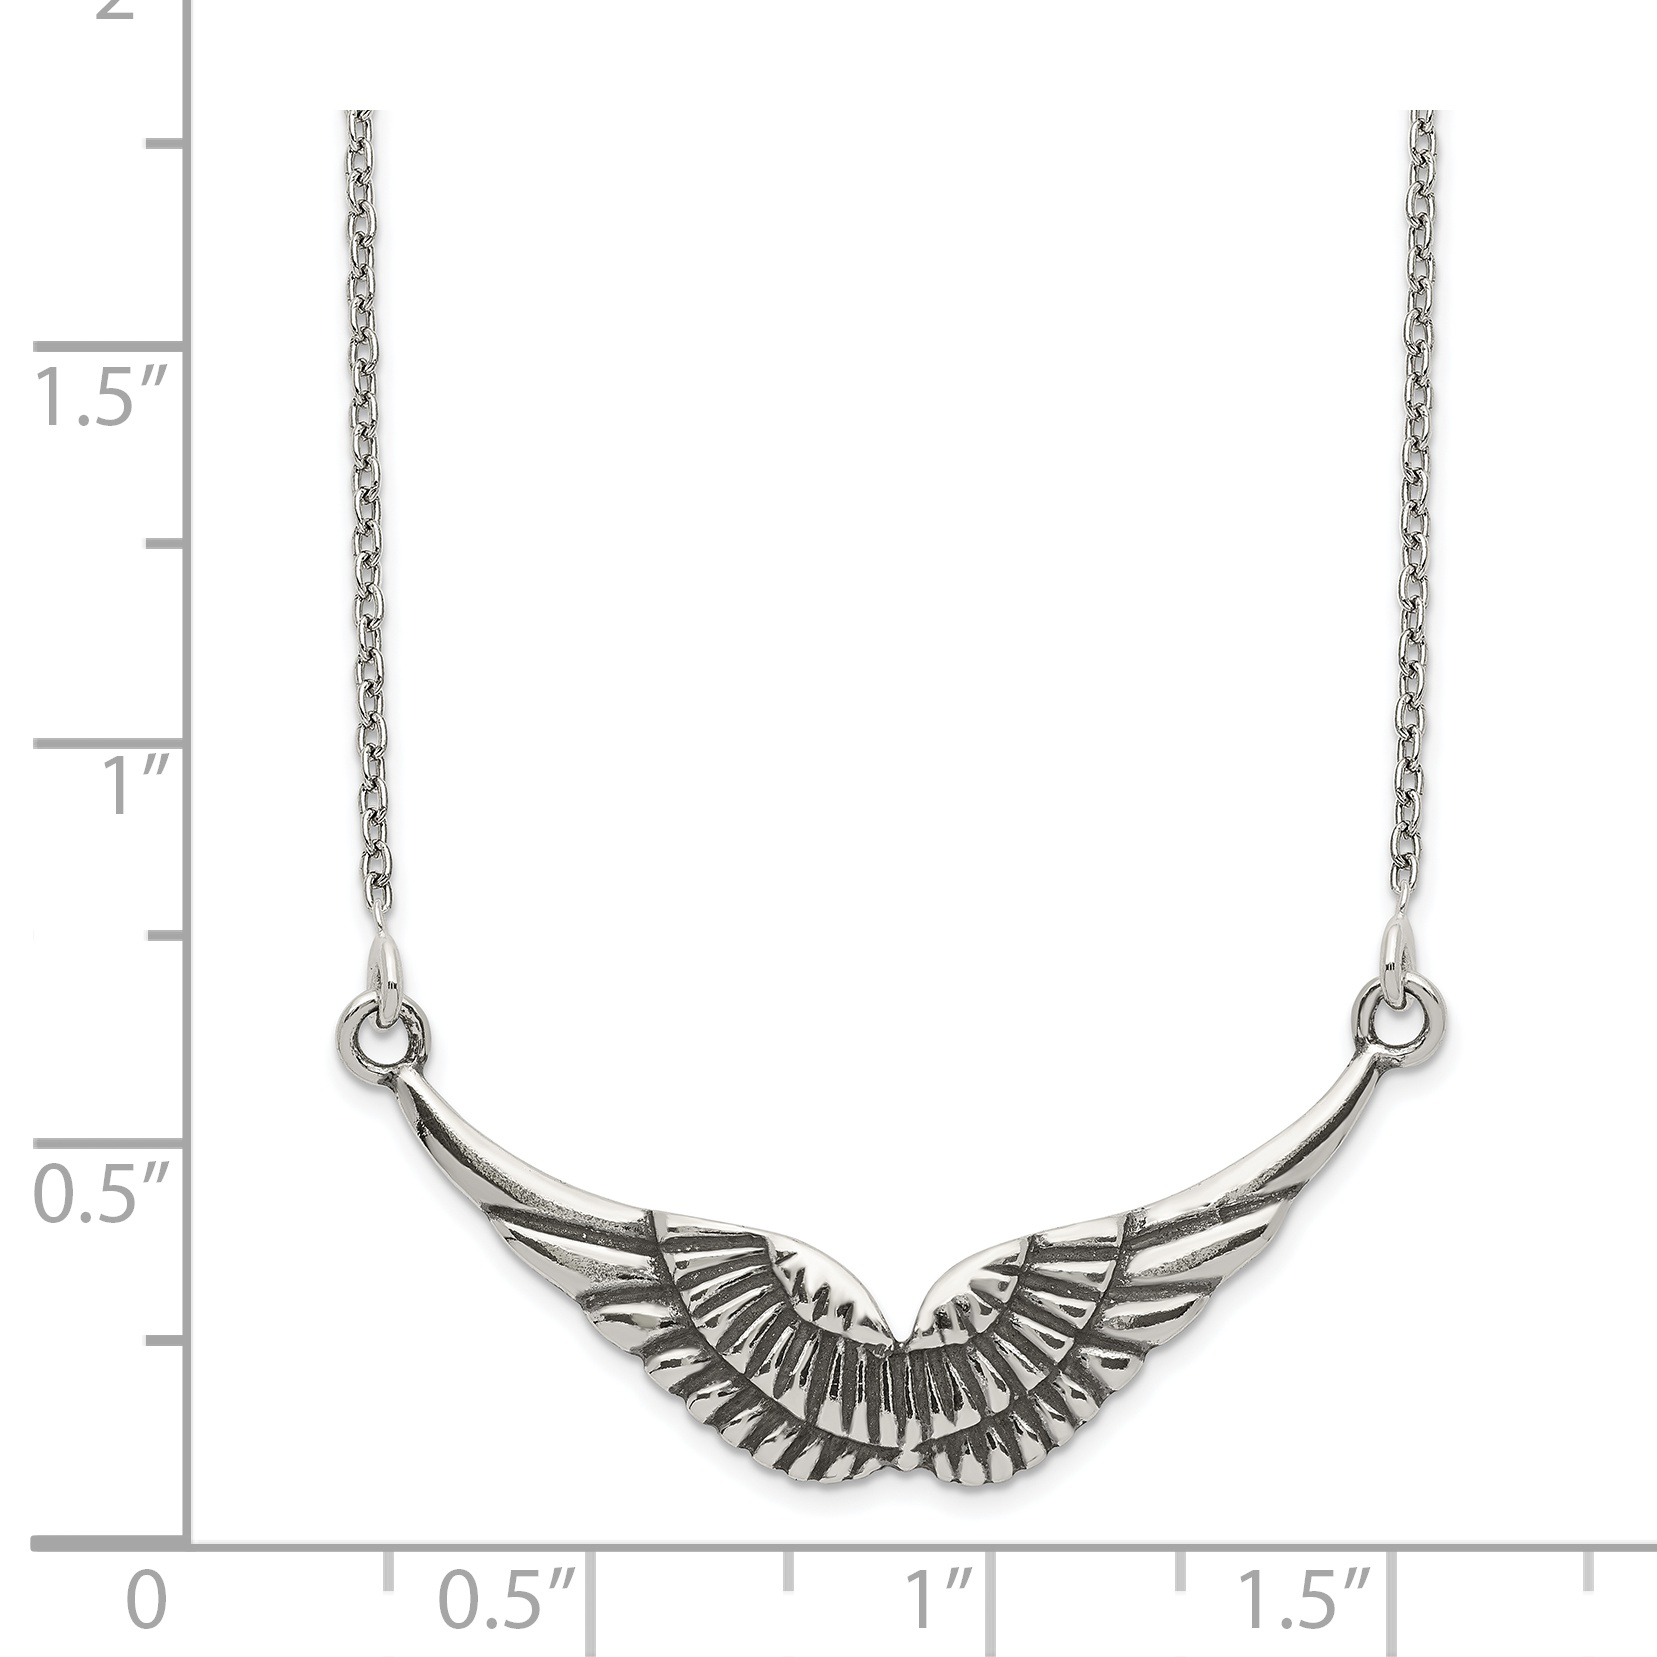 925 Sterling Silver Wings Chain Necklace Pendant Charm Wing Fine Jewelry Gifts For Women For Her - image 1 of 2